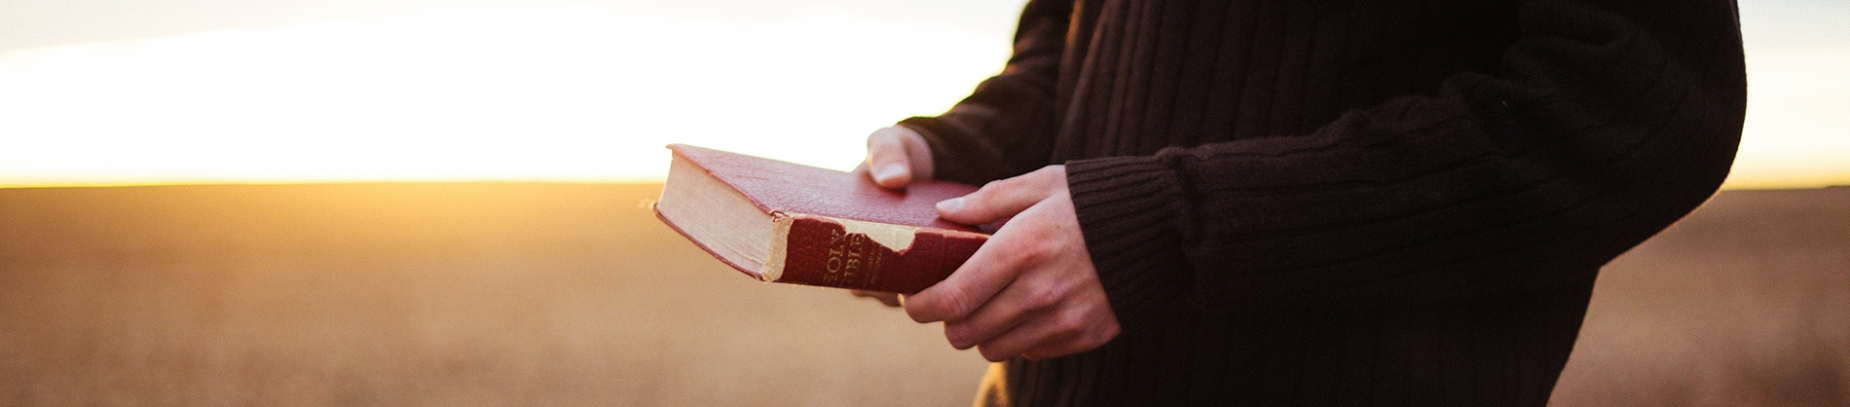 A guy in a jumper holding a brown bible